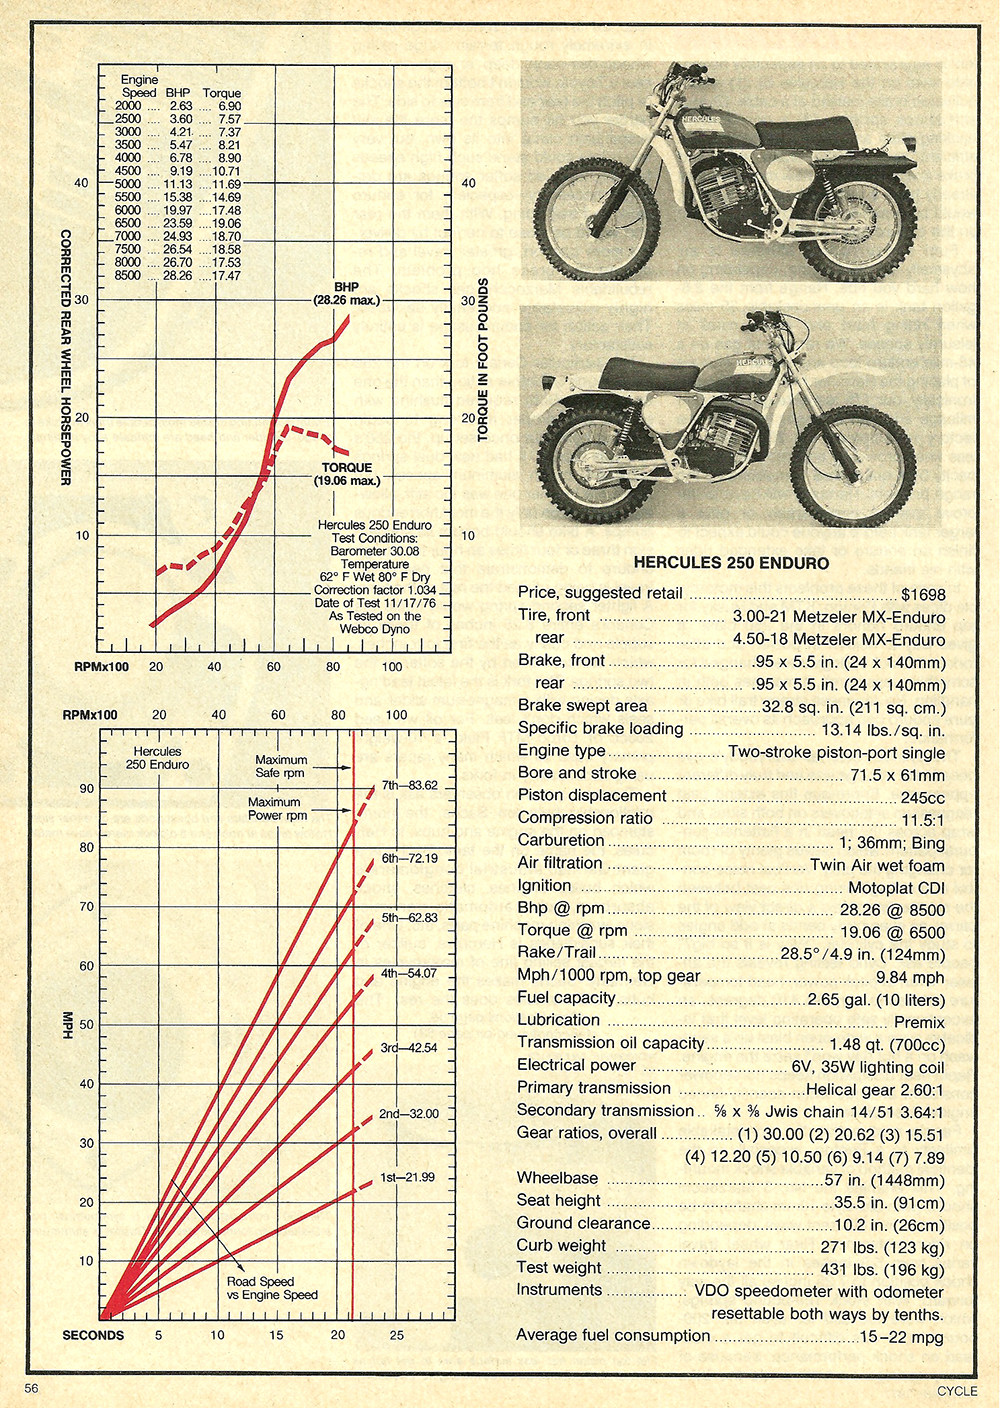 1977 Hercules 250 Enduro road test 5.jpg